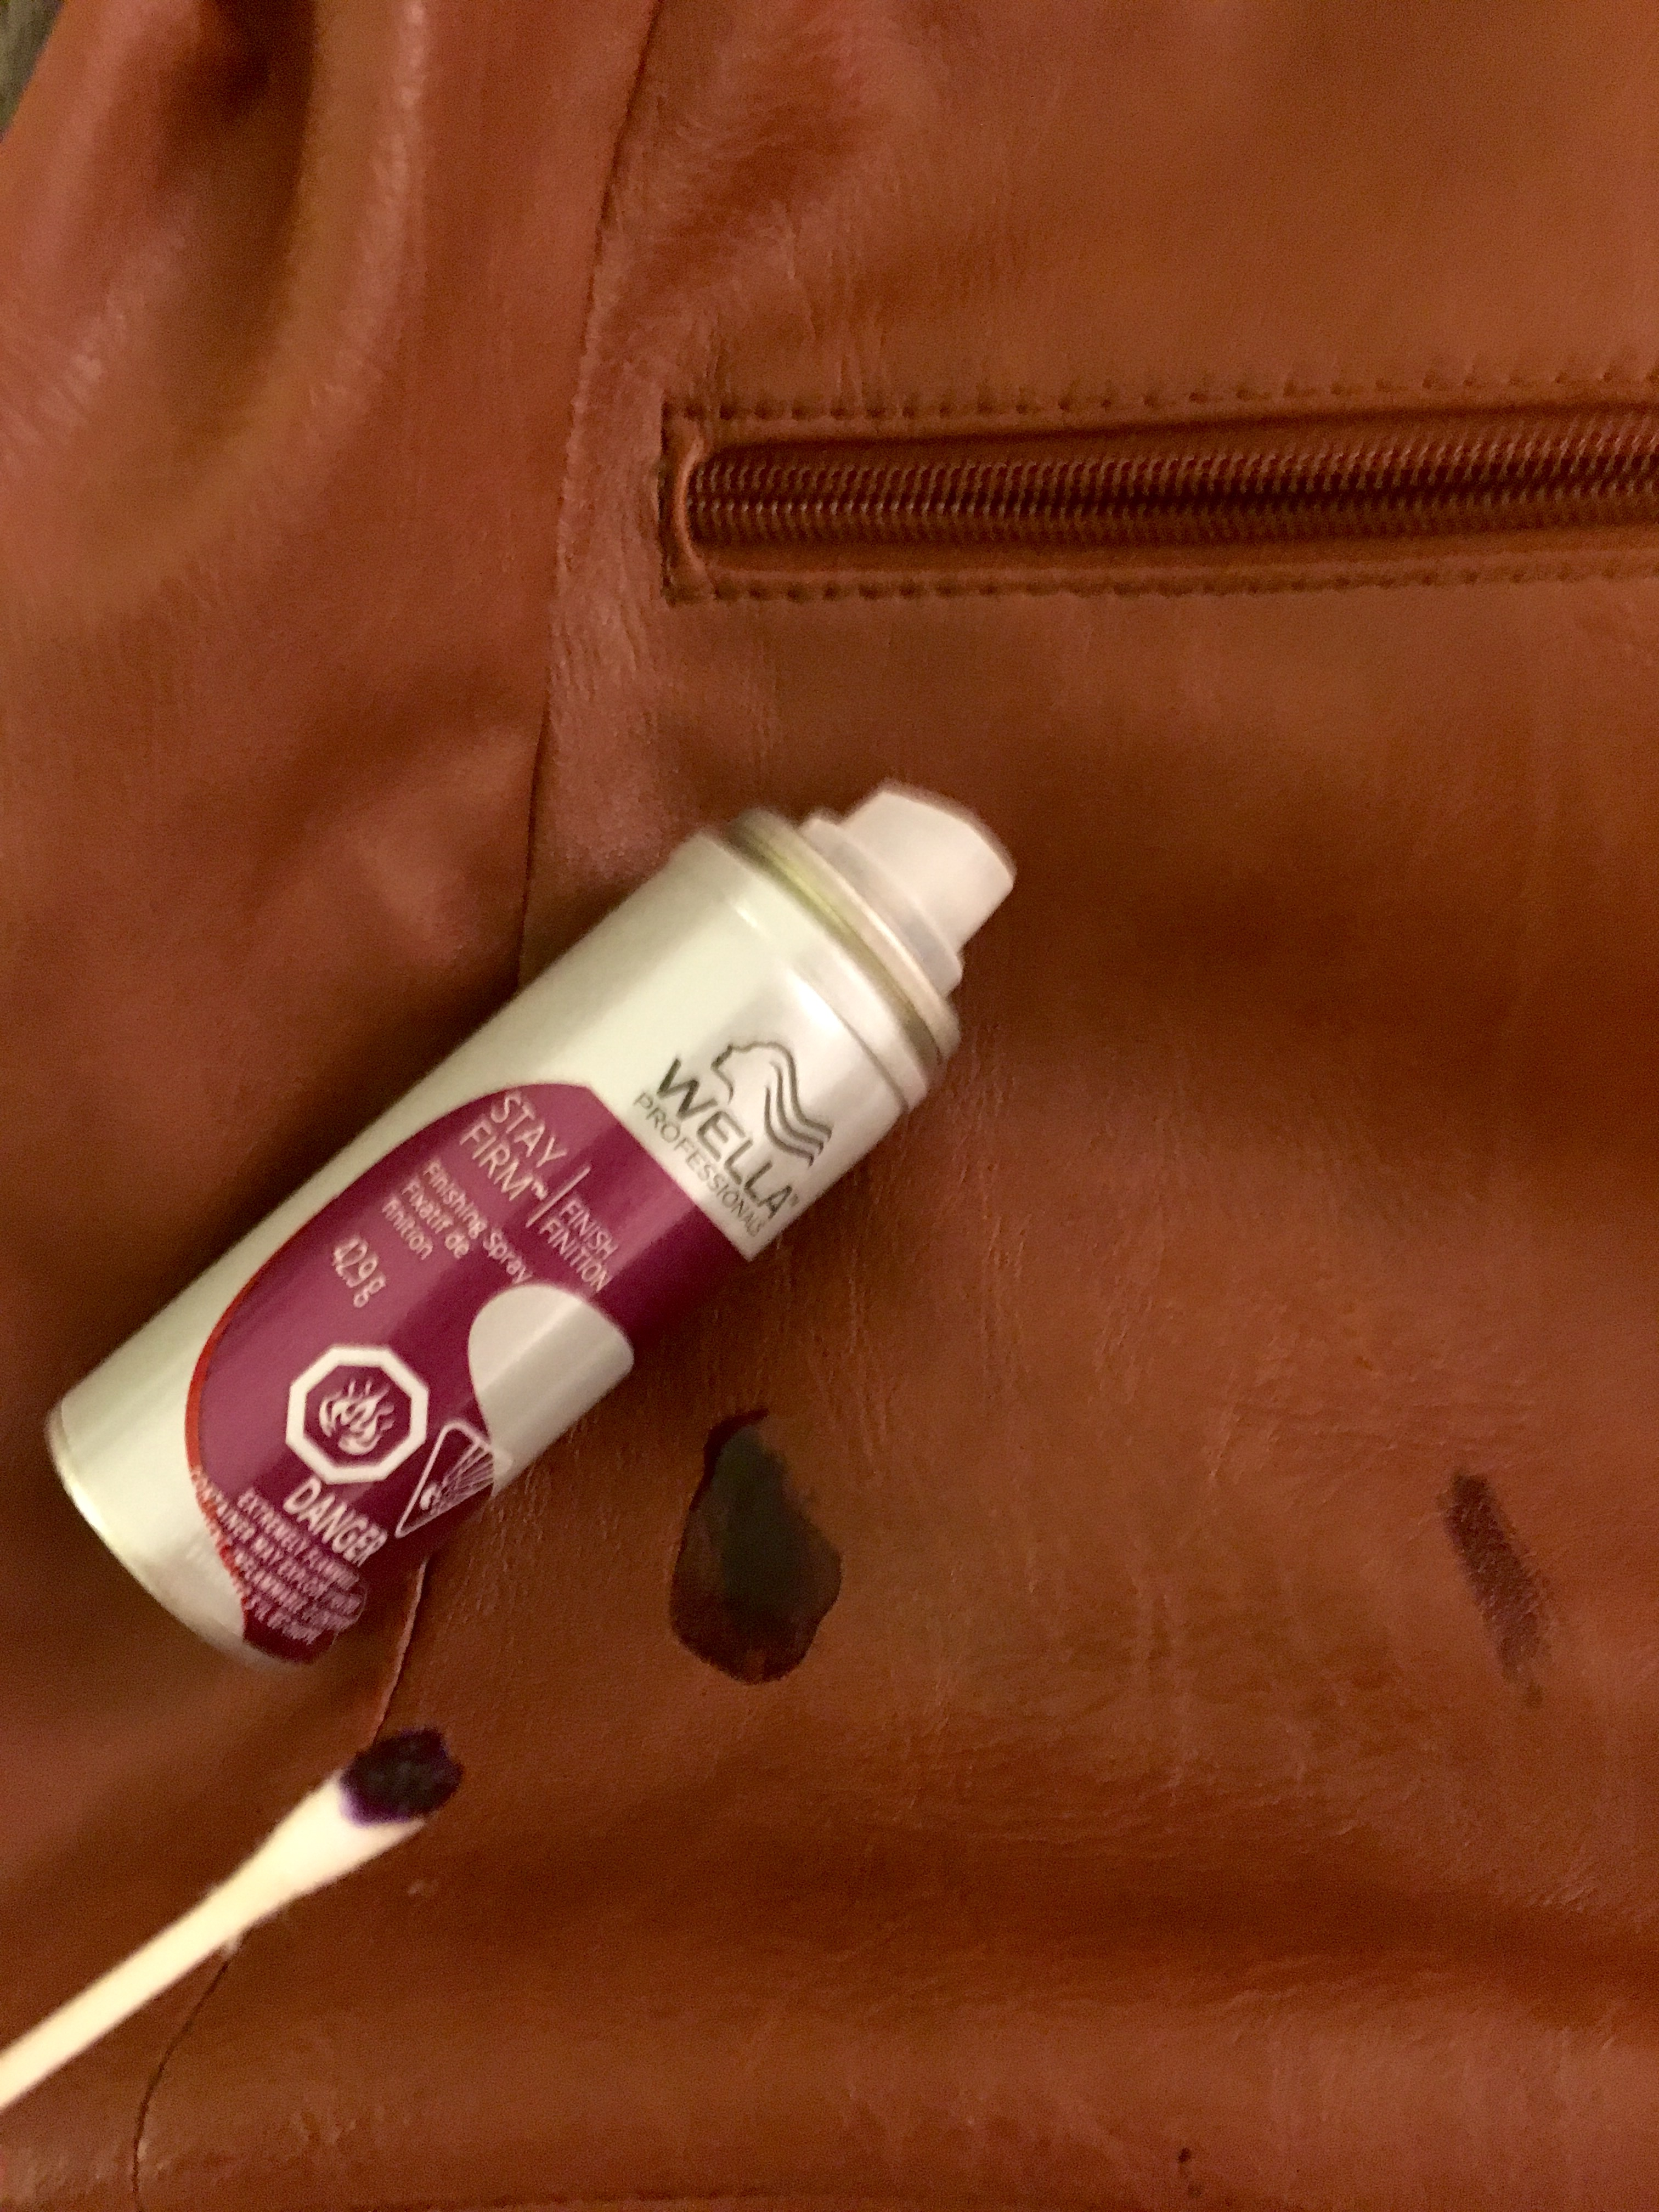 how to remove hair dye stain from leather sofa white genuine get an ink out of a purse then gently rub the in circular motion should gradually disappear